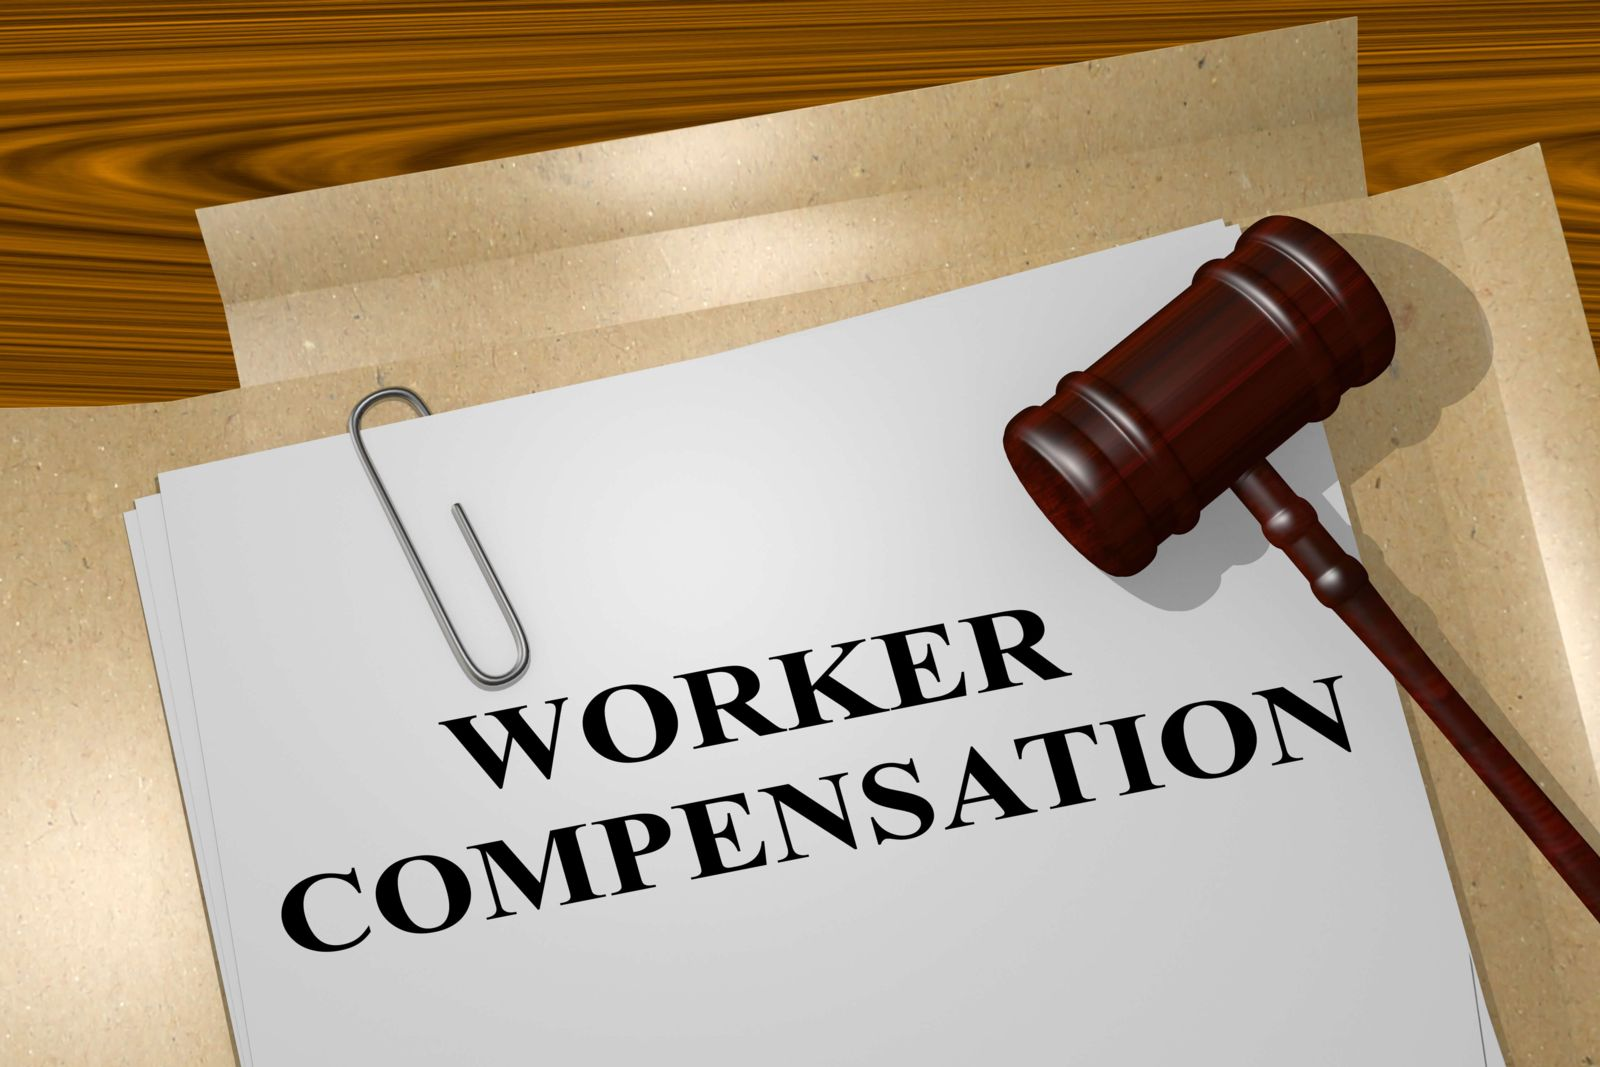 Worker Compensation Claim